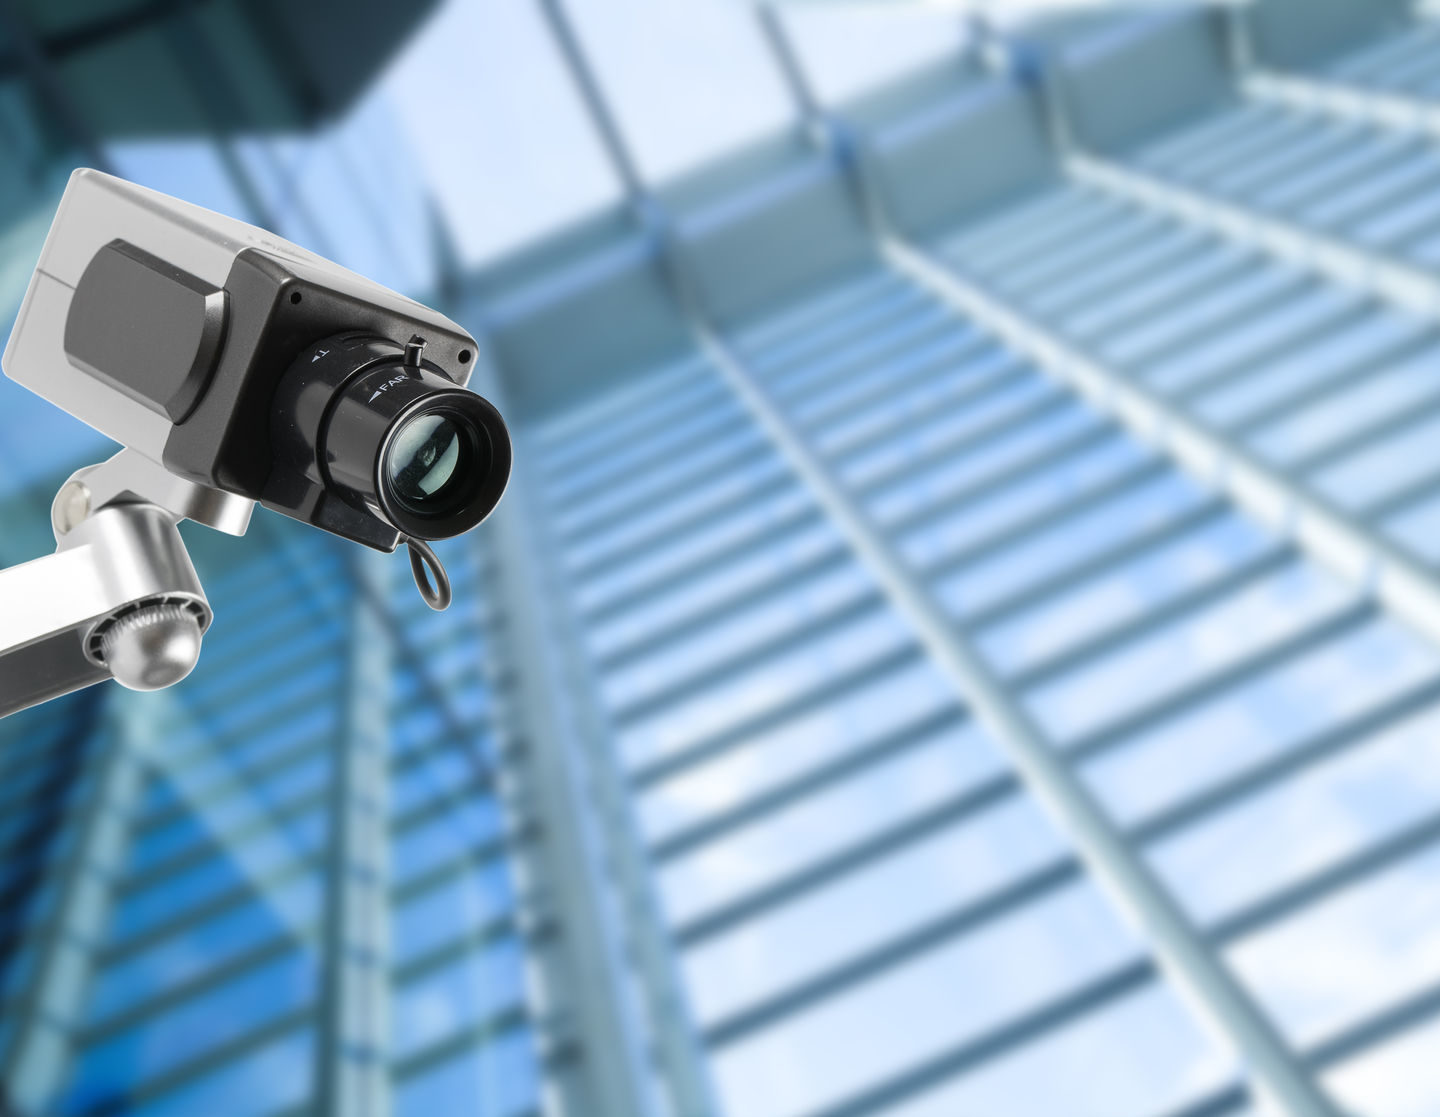 Use Of Storage In Video Surveillance System